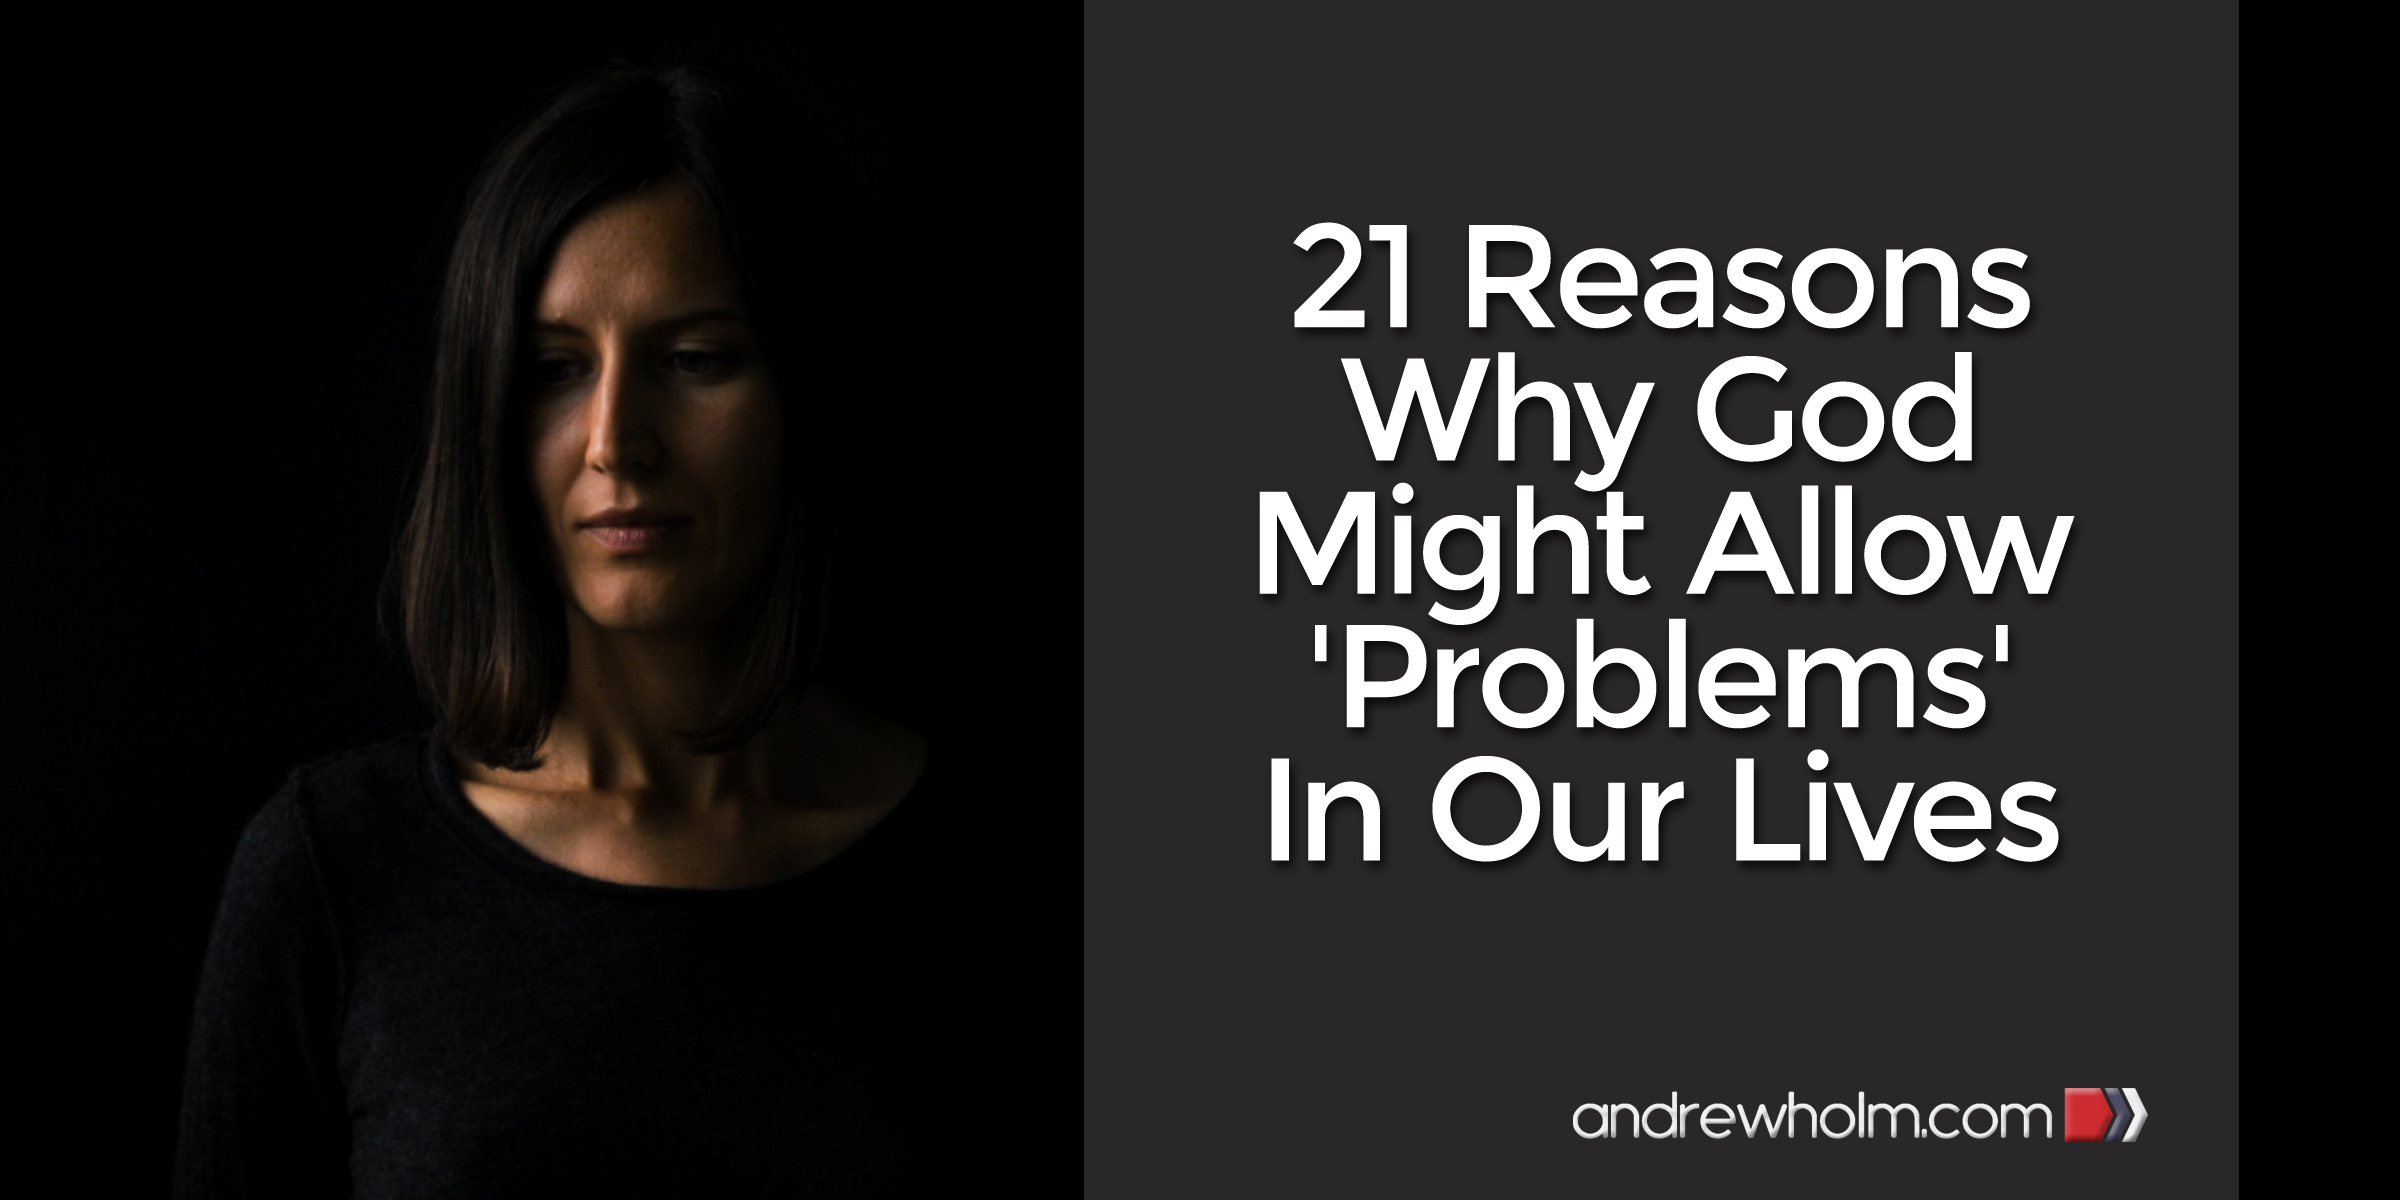 21 Reasons Why God Might Allow 'Problems' In Our Lives